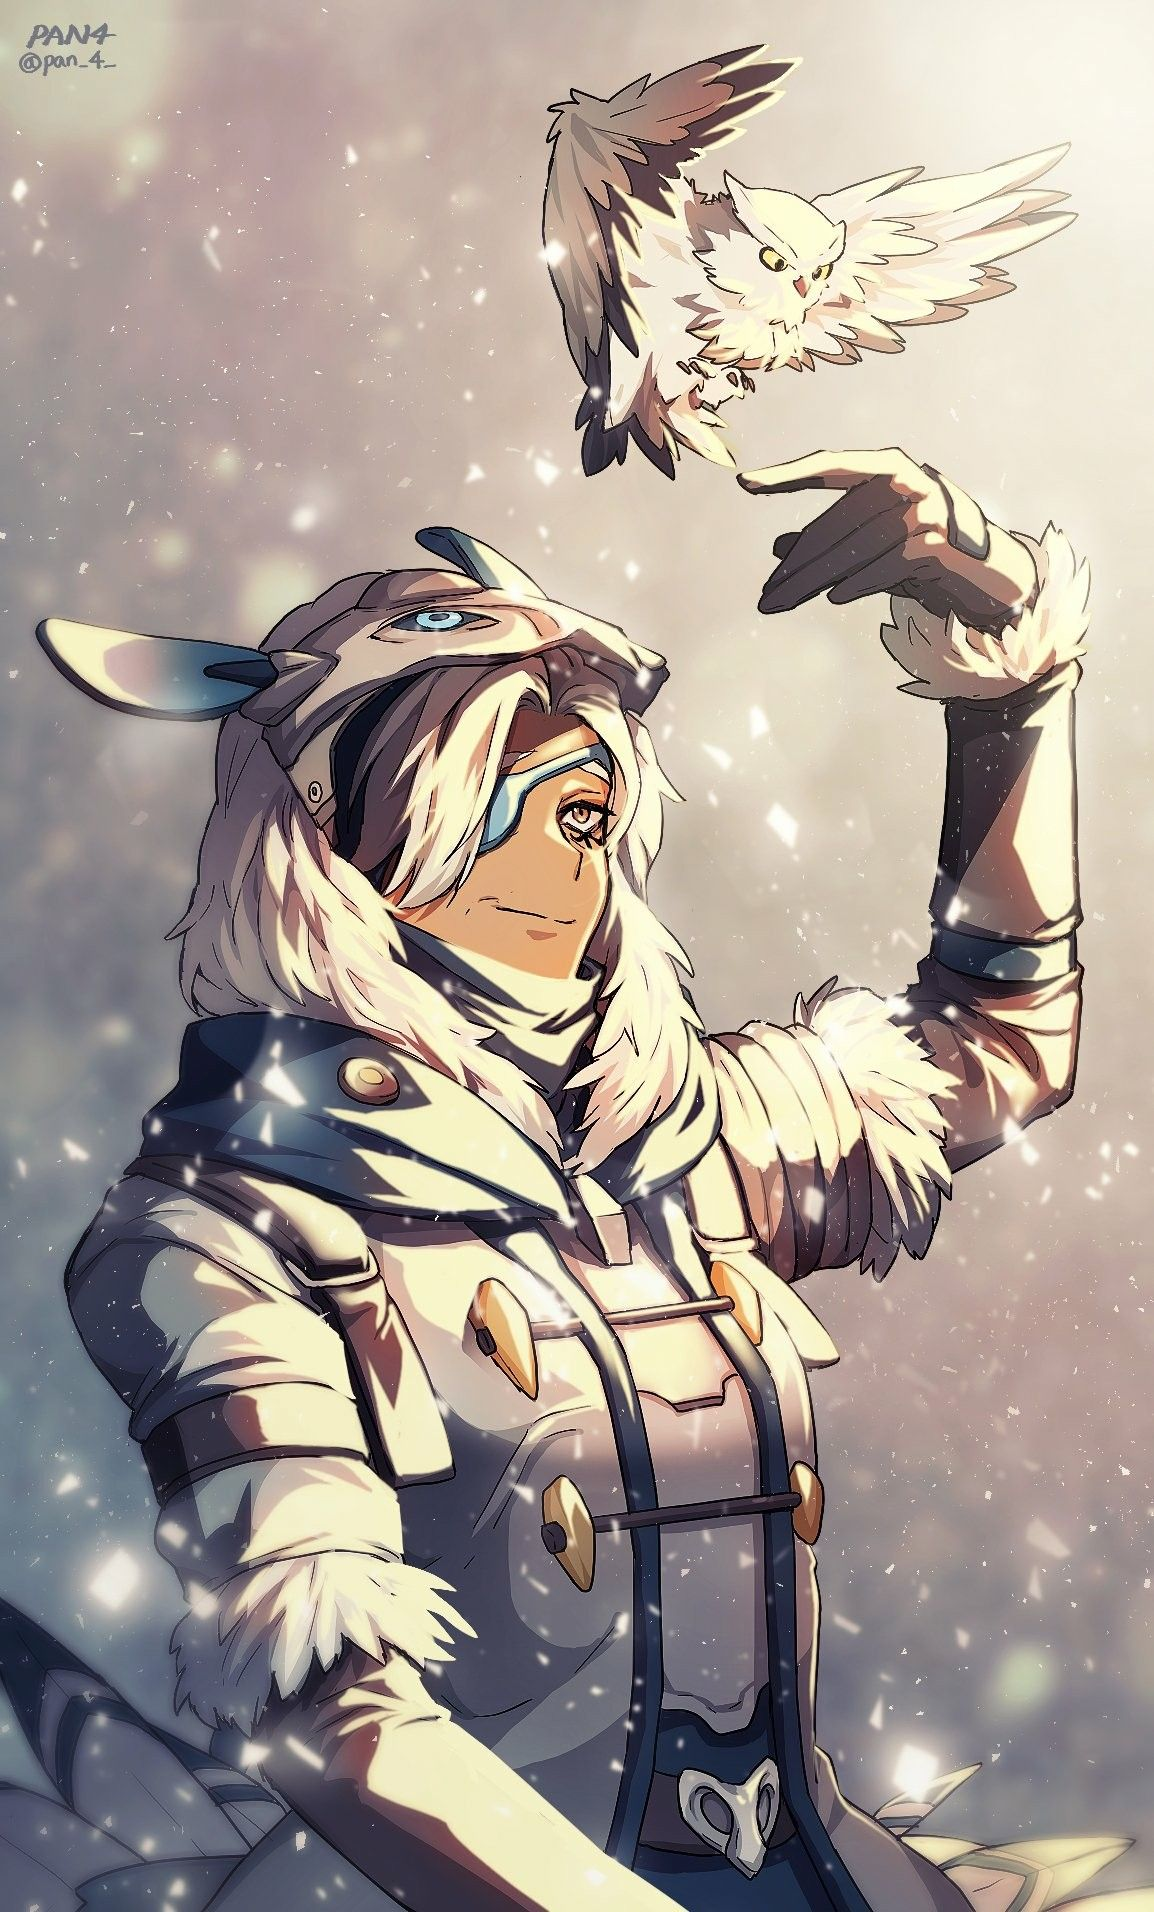 Pin von Olivia Jones auf Gaming | Pinterest | Overwatsch, Anime ...